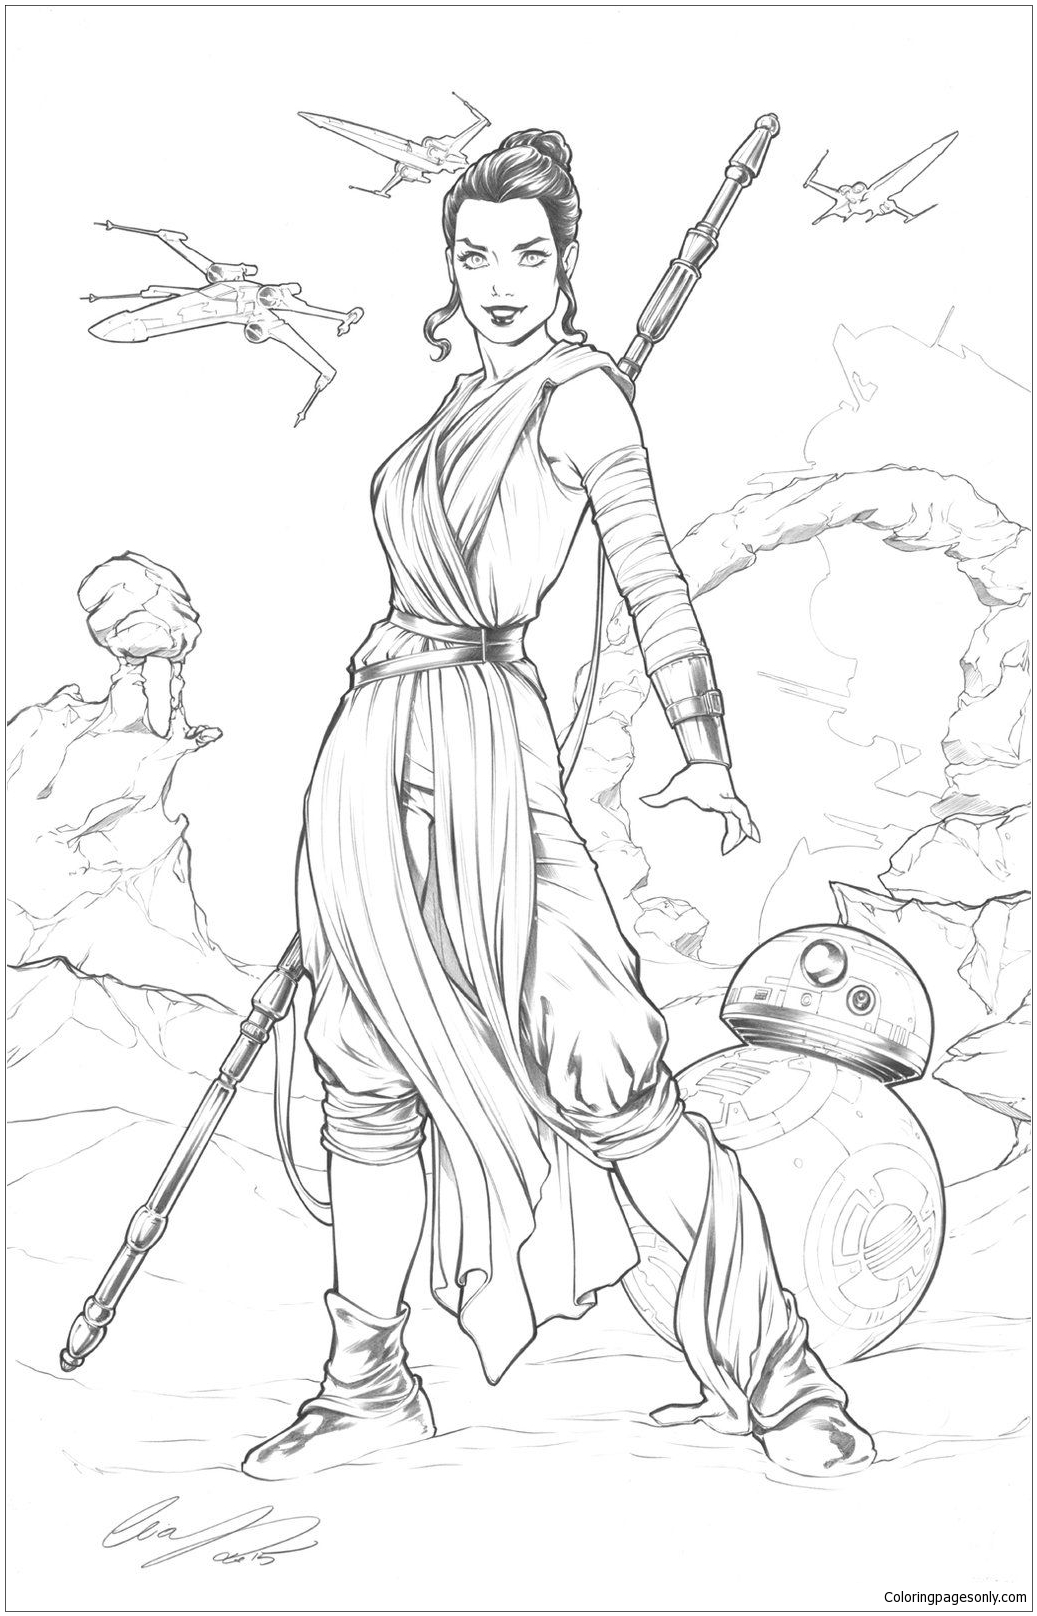 Rey Star Wars Coloring Page Free Coloring Pages Online